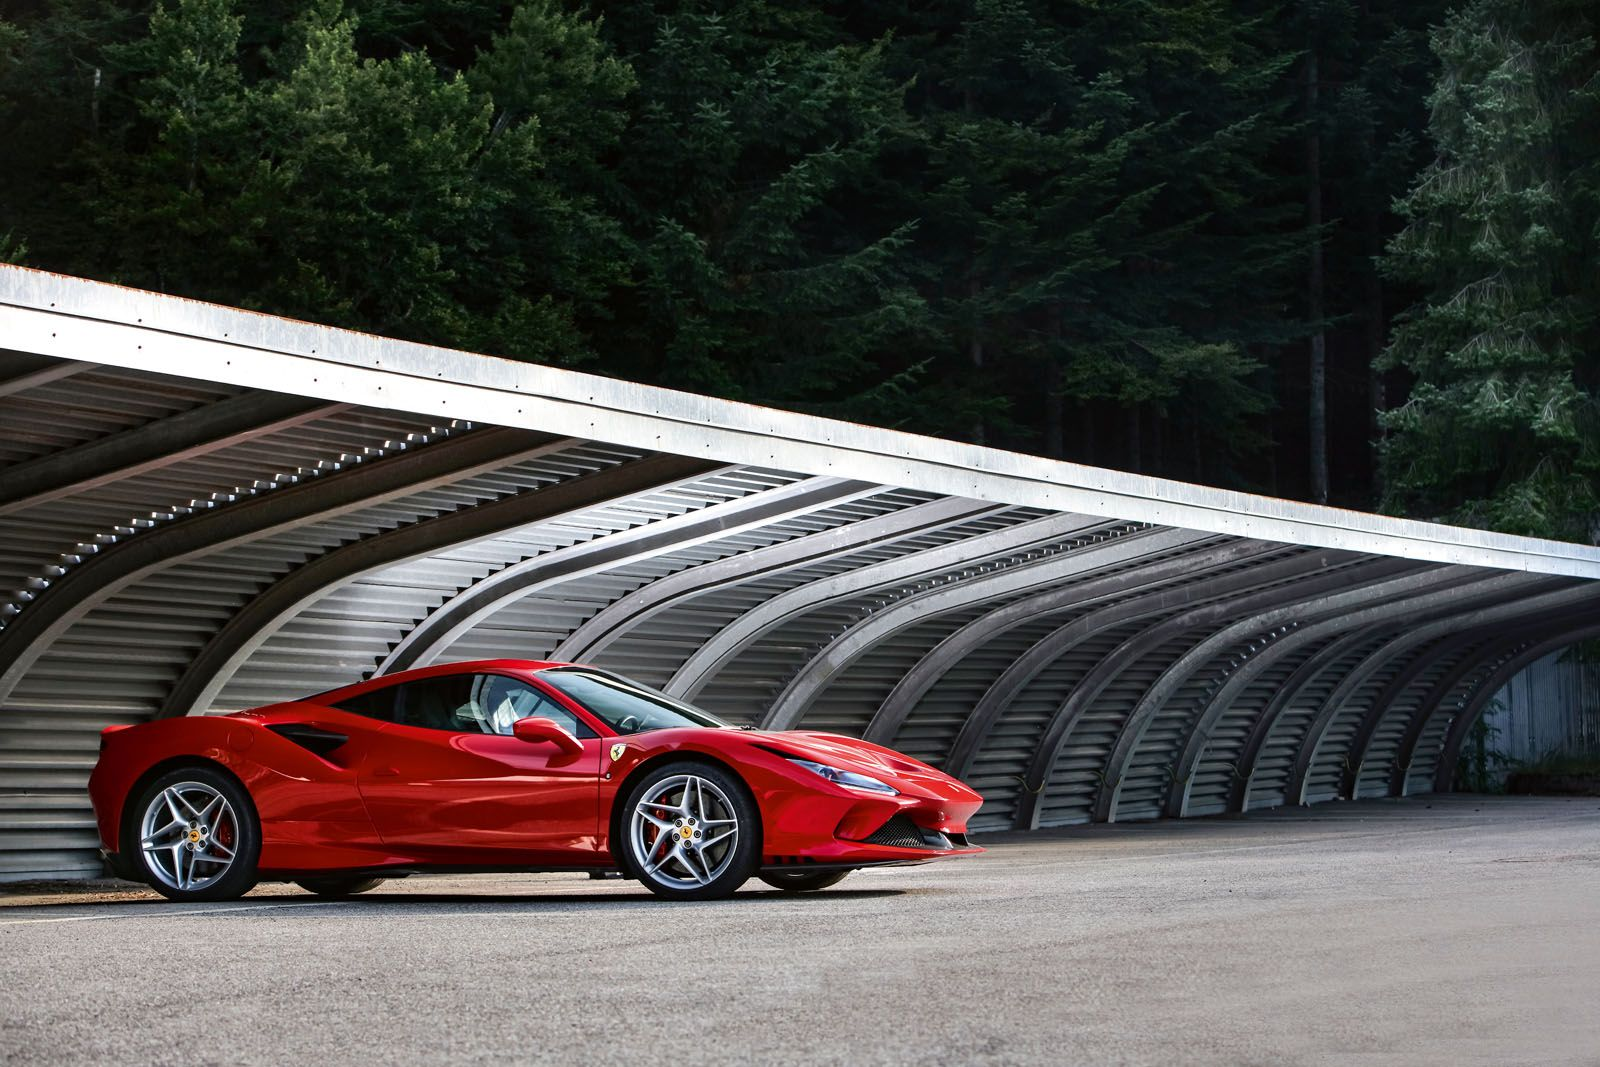 The styling of the Ferrari F8 Tributo features a degree of complexity that gives it a touch of sophistication that is missing from the current crop of supercars